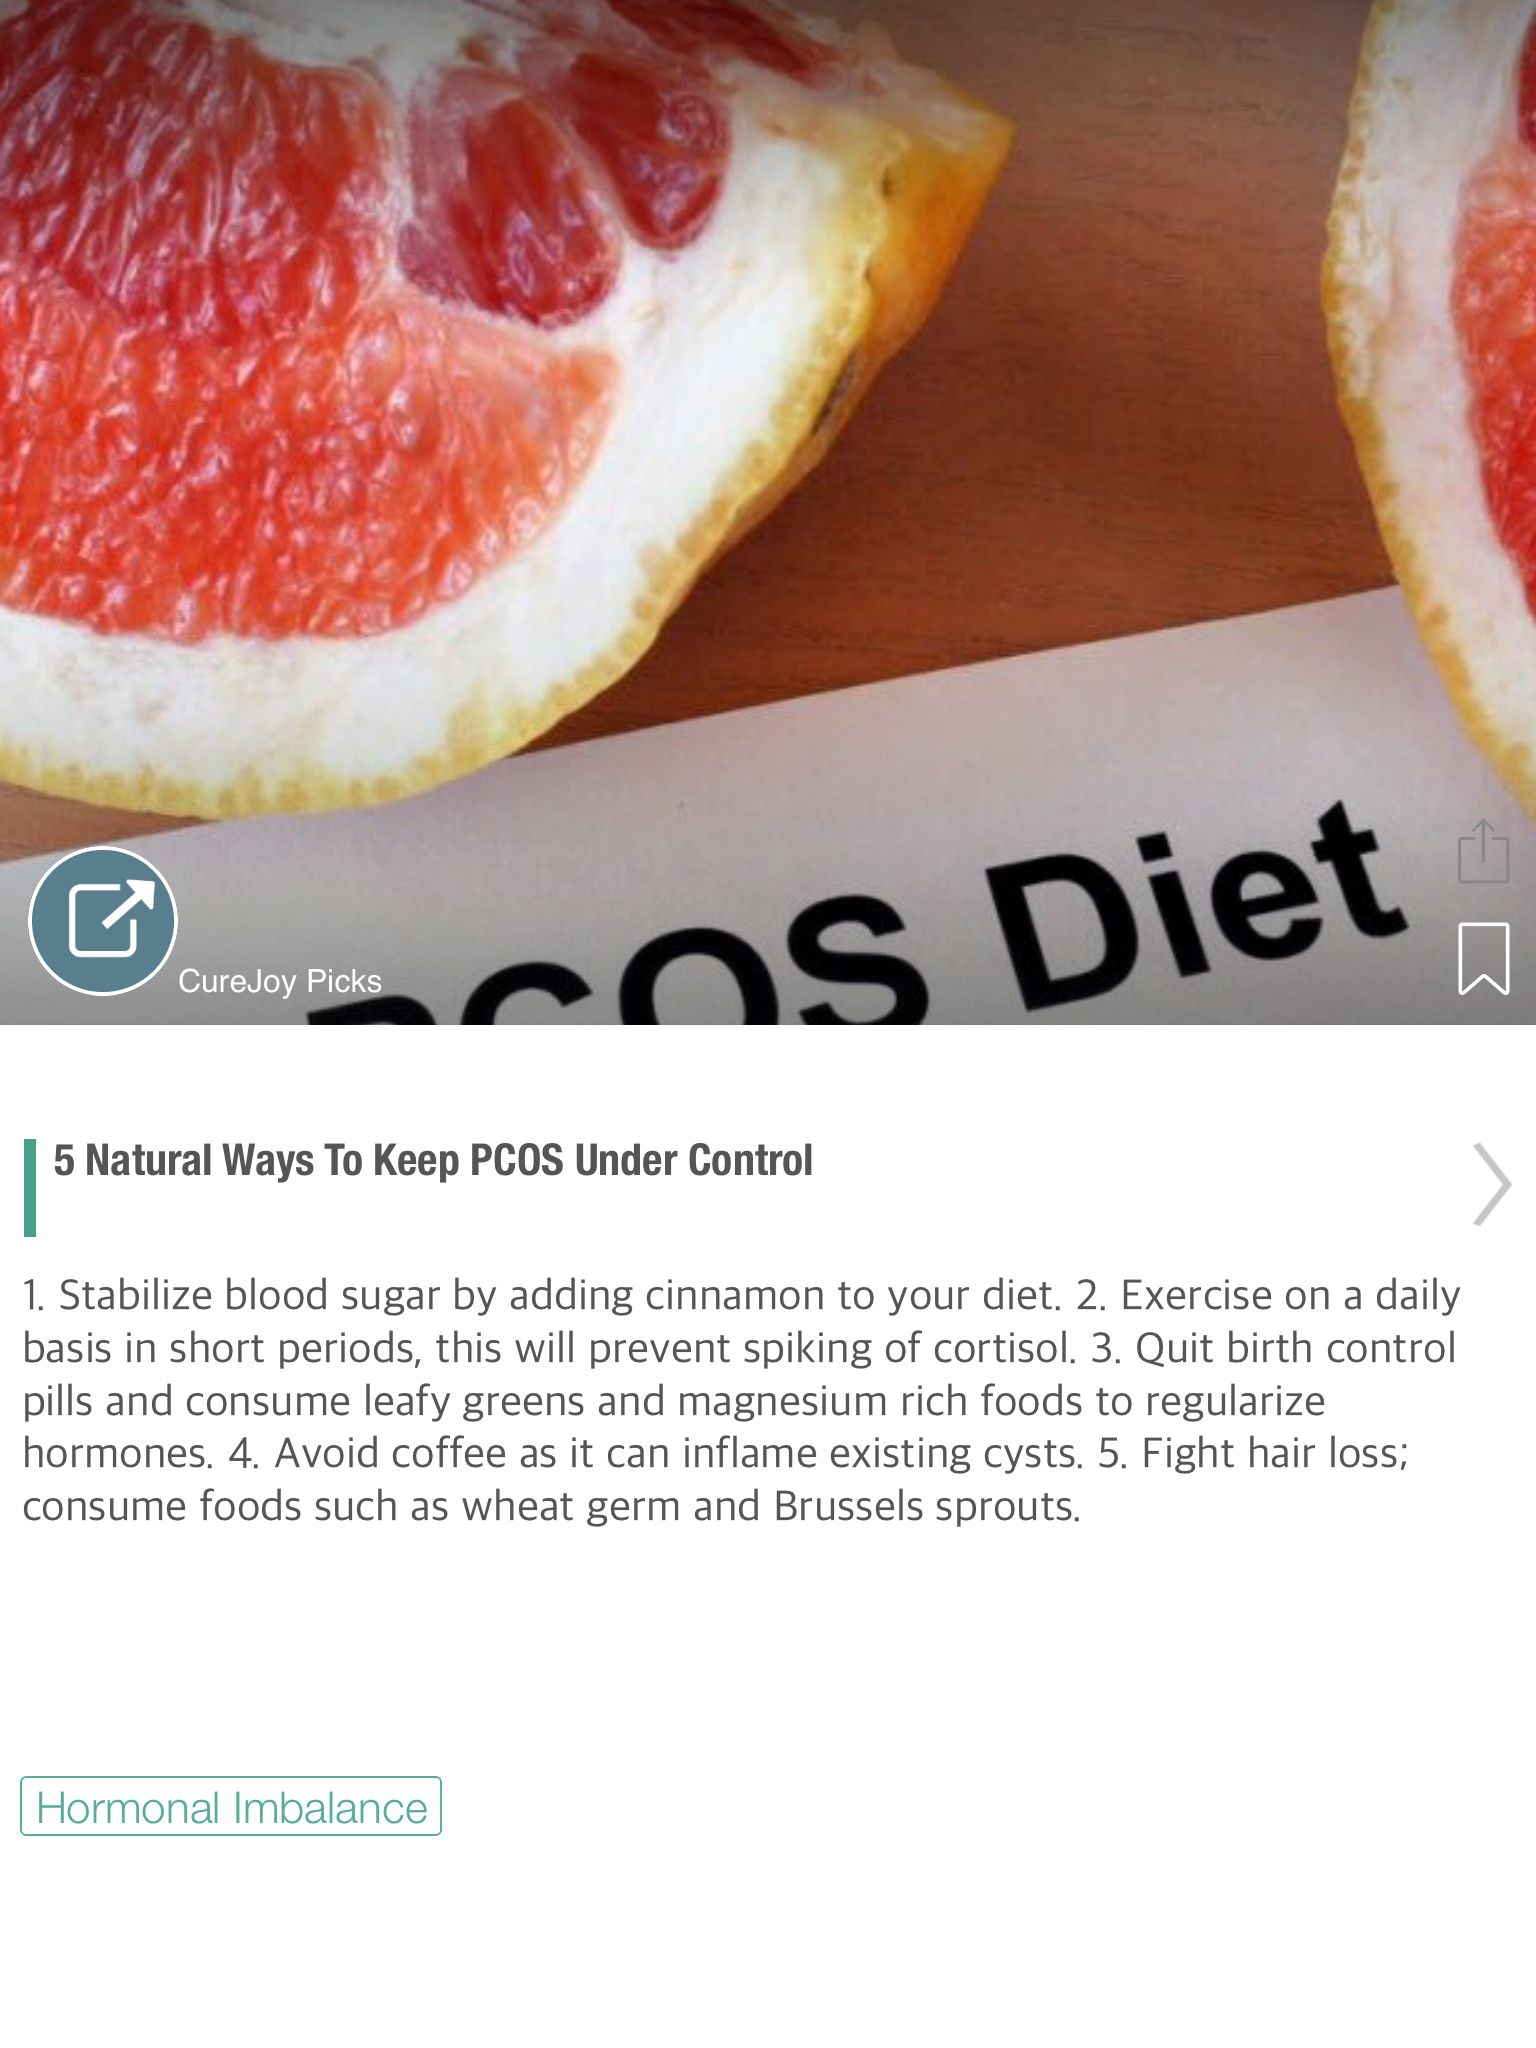 5 Natural Ways To Keep PCOS Under Control - via @CureJoy